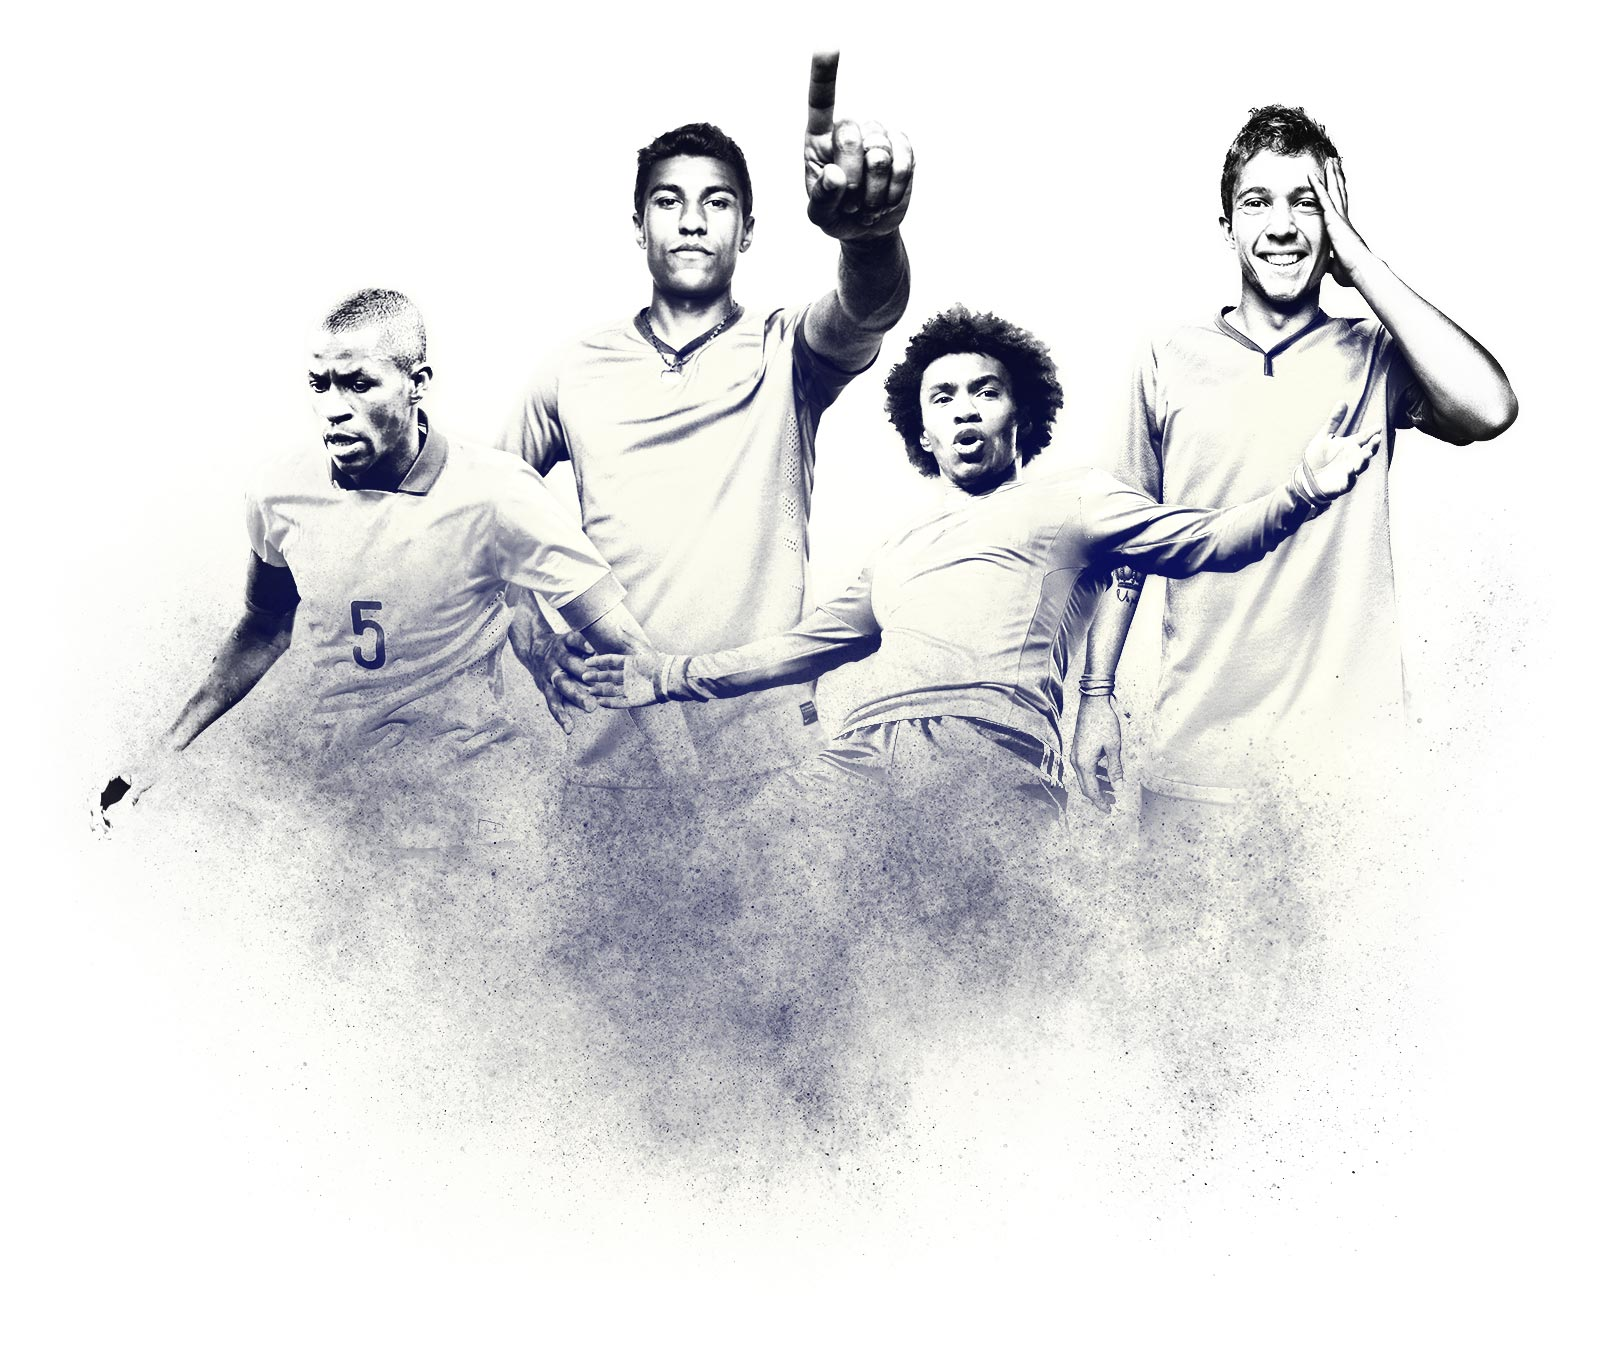 worldcup-brazil-team